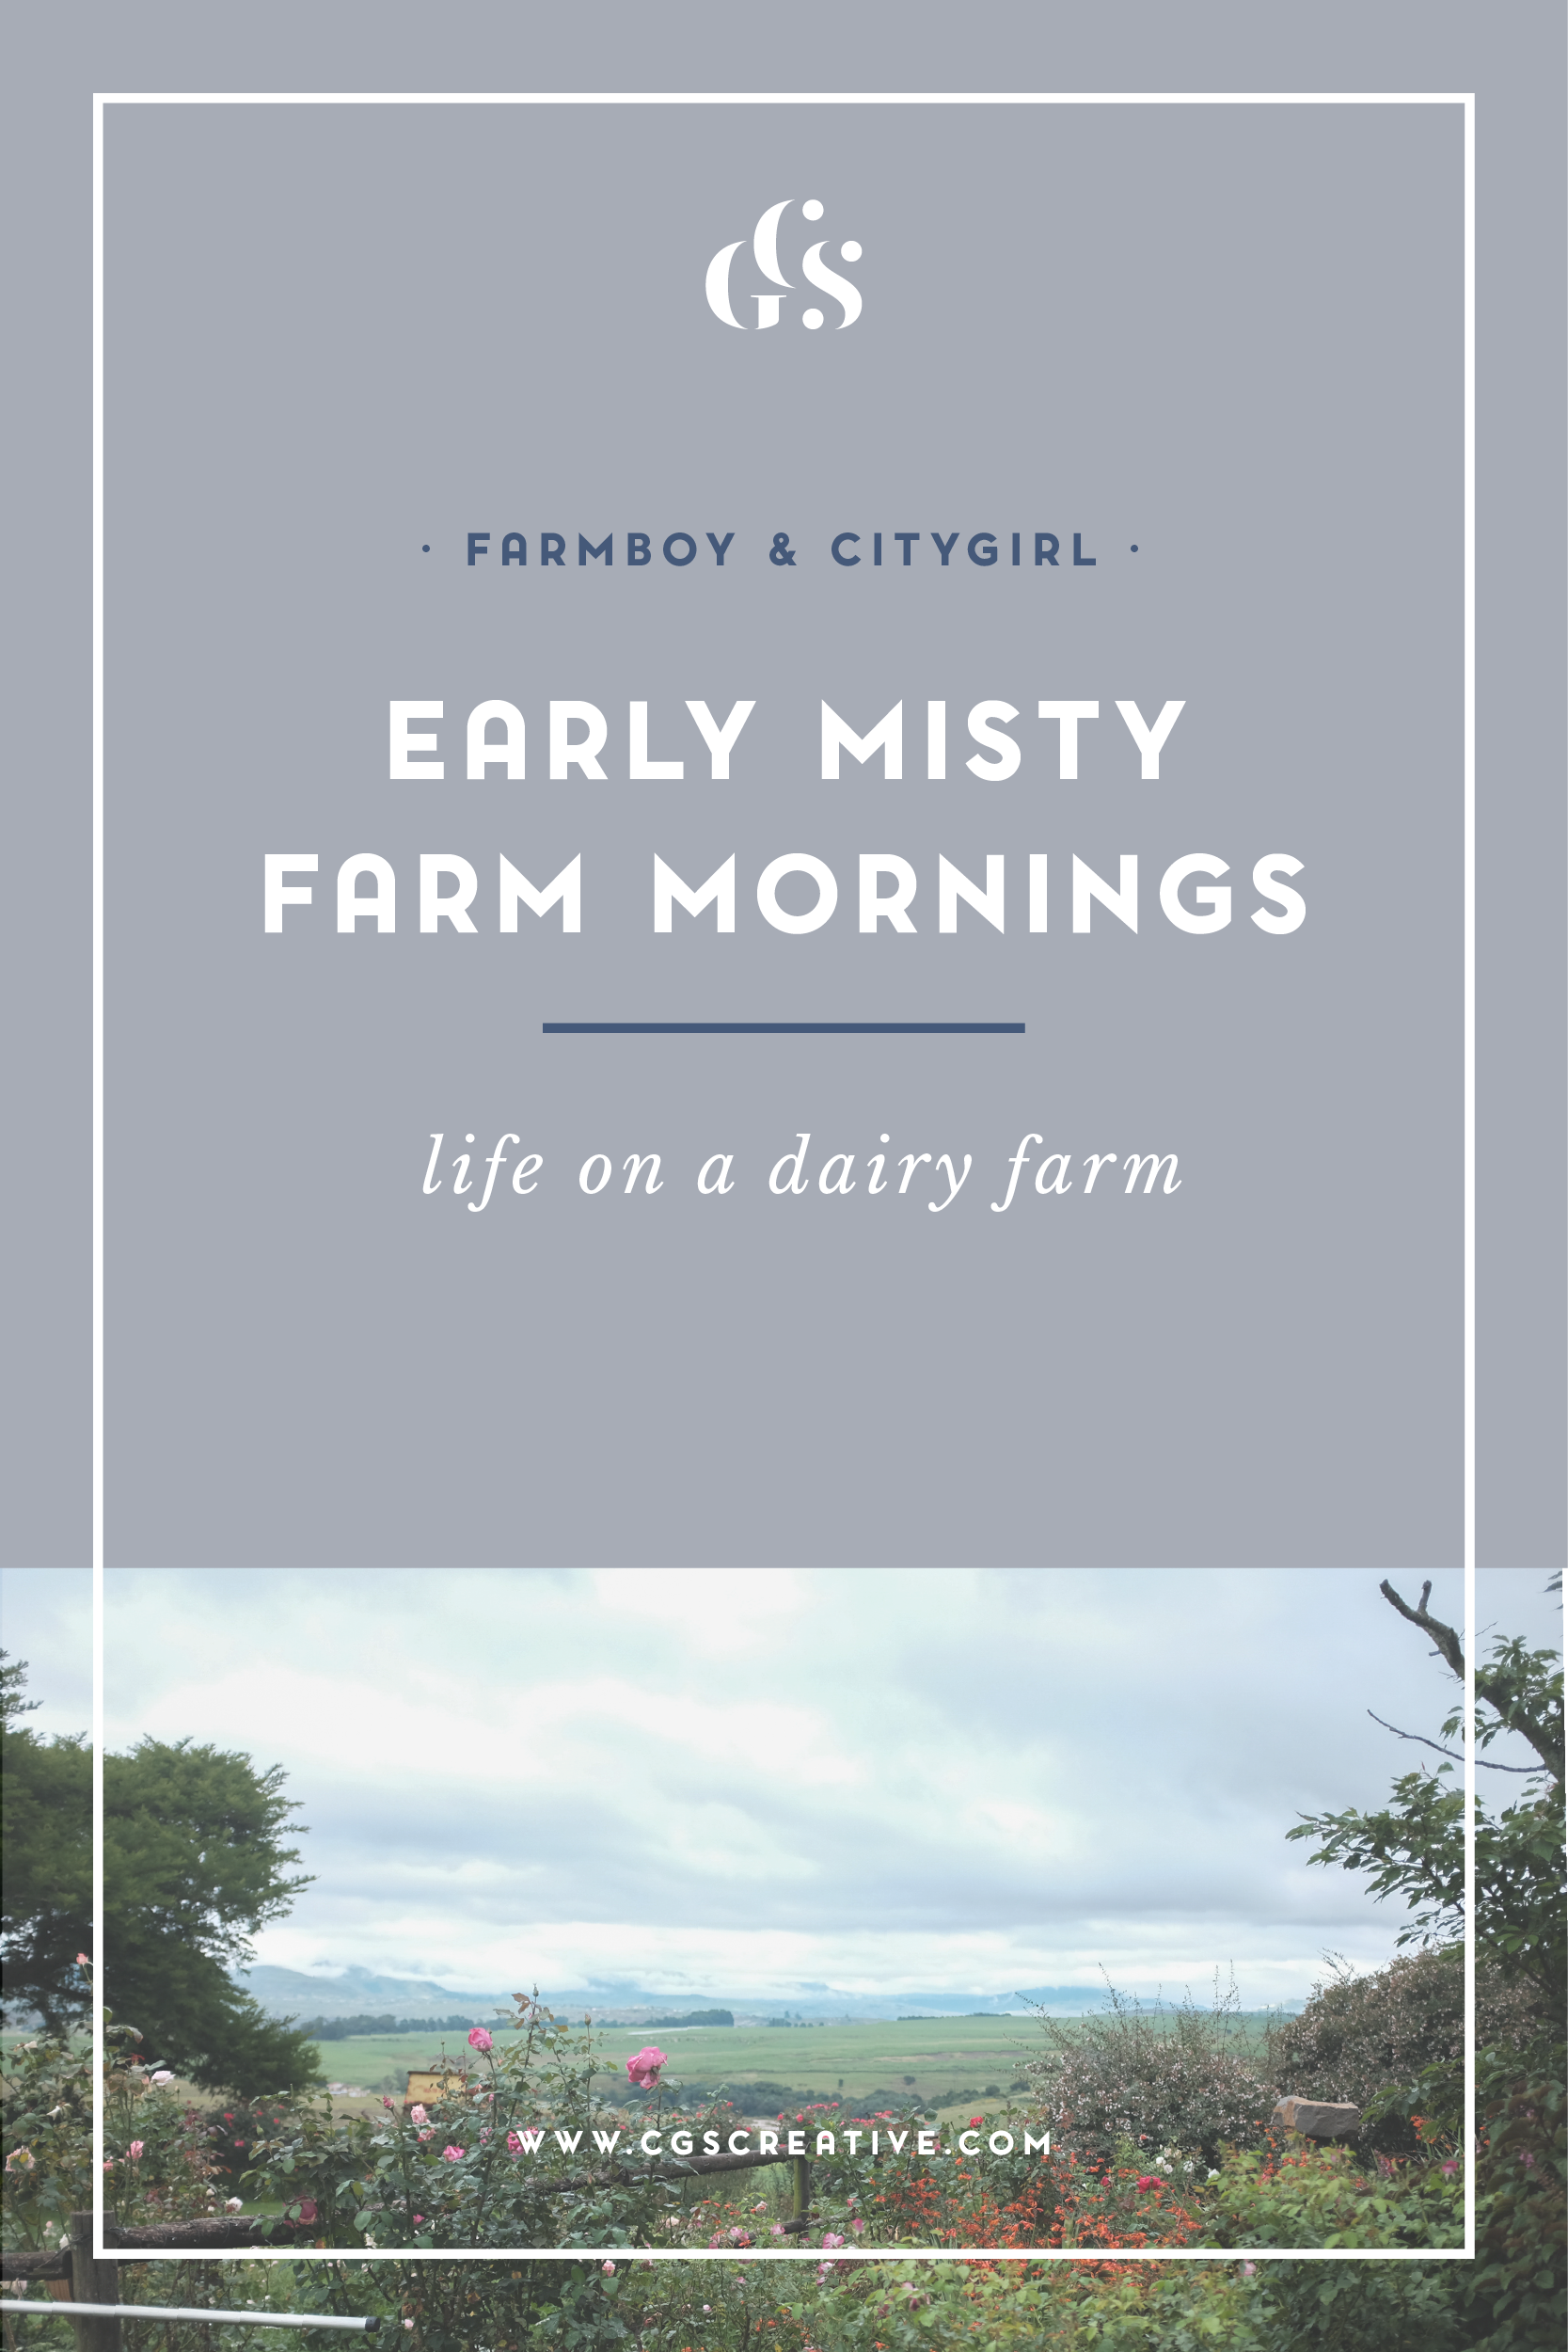 Early Mosty Farm Mornings on the Dairy Farm with Farmboy & CityGirl South Africa-01.png